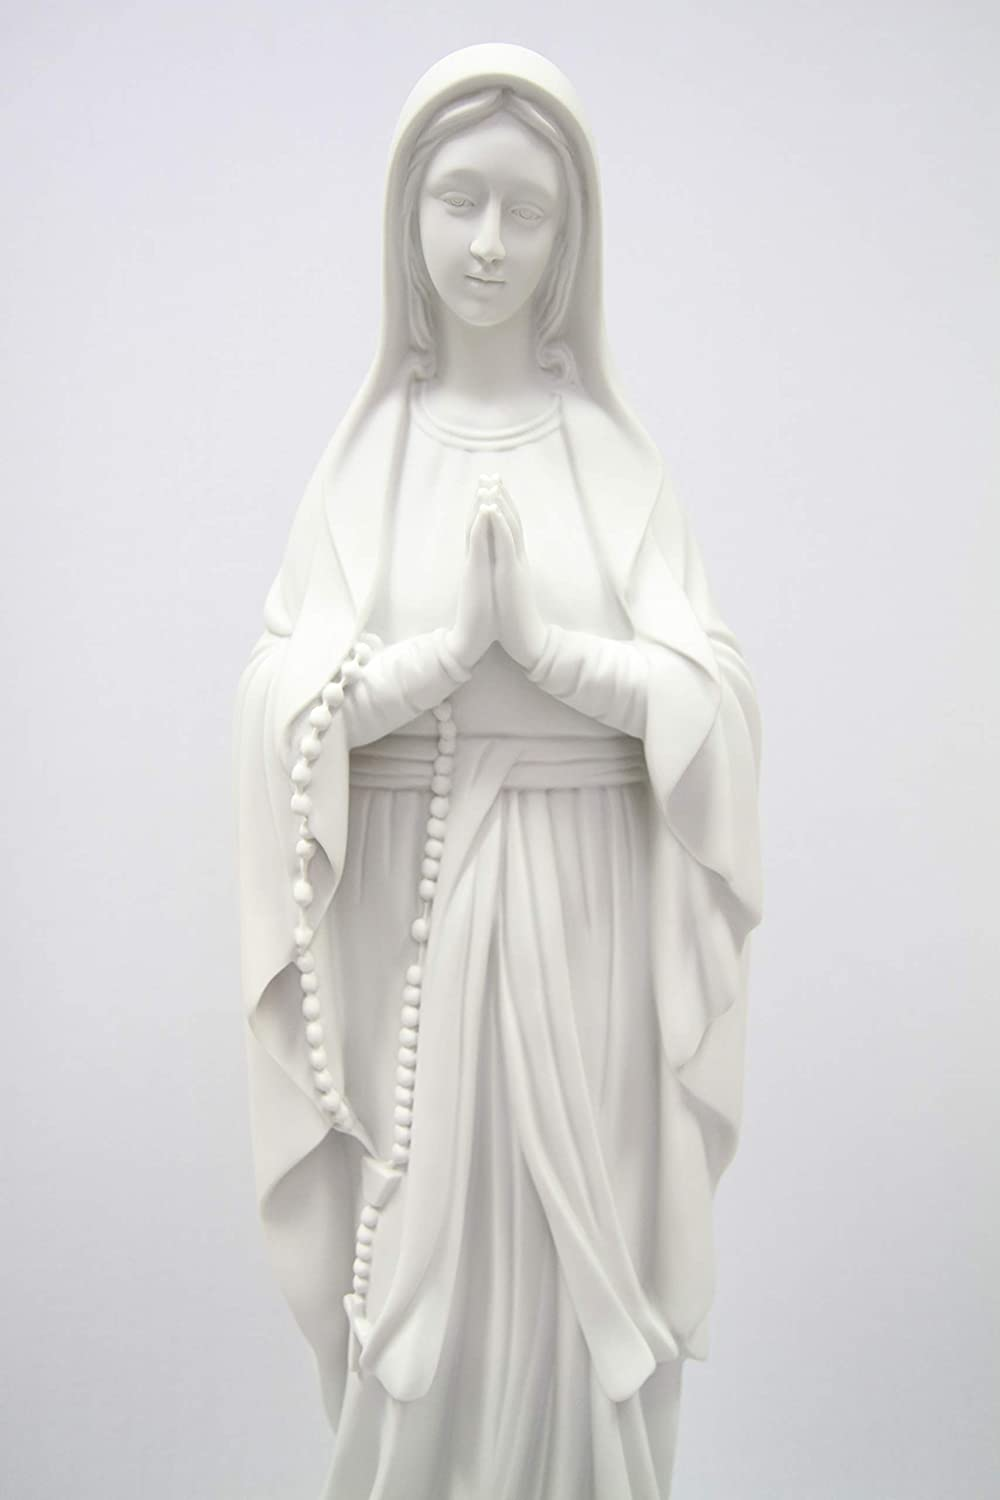 32 Our Lady of Lourdes Blessed Virgin Mary Catholic Statue Sculpture Figure Vittoria Collection Made in Italy Indoor Outdoor Garden